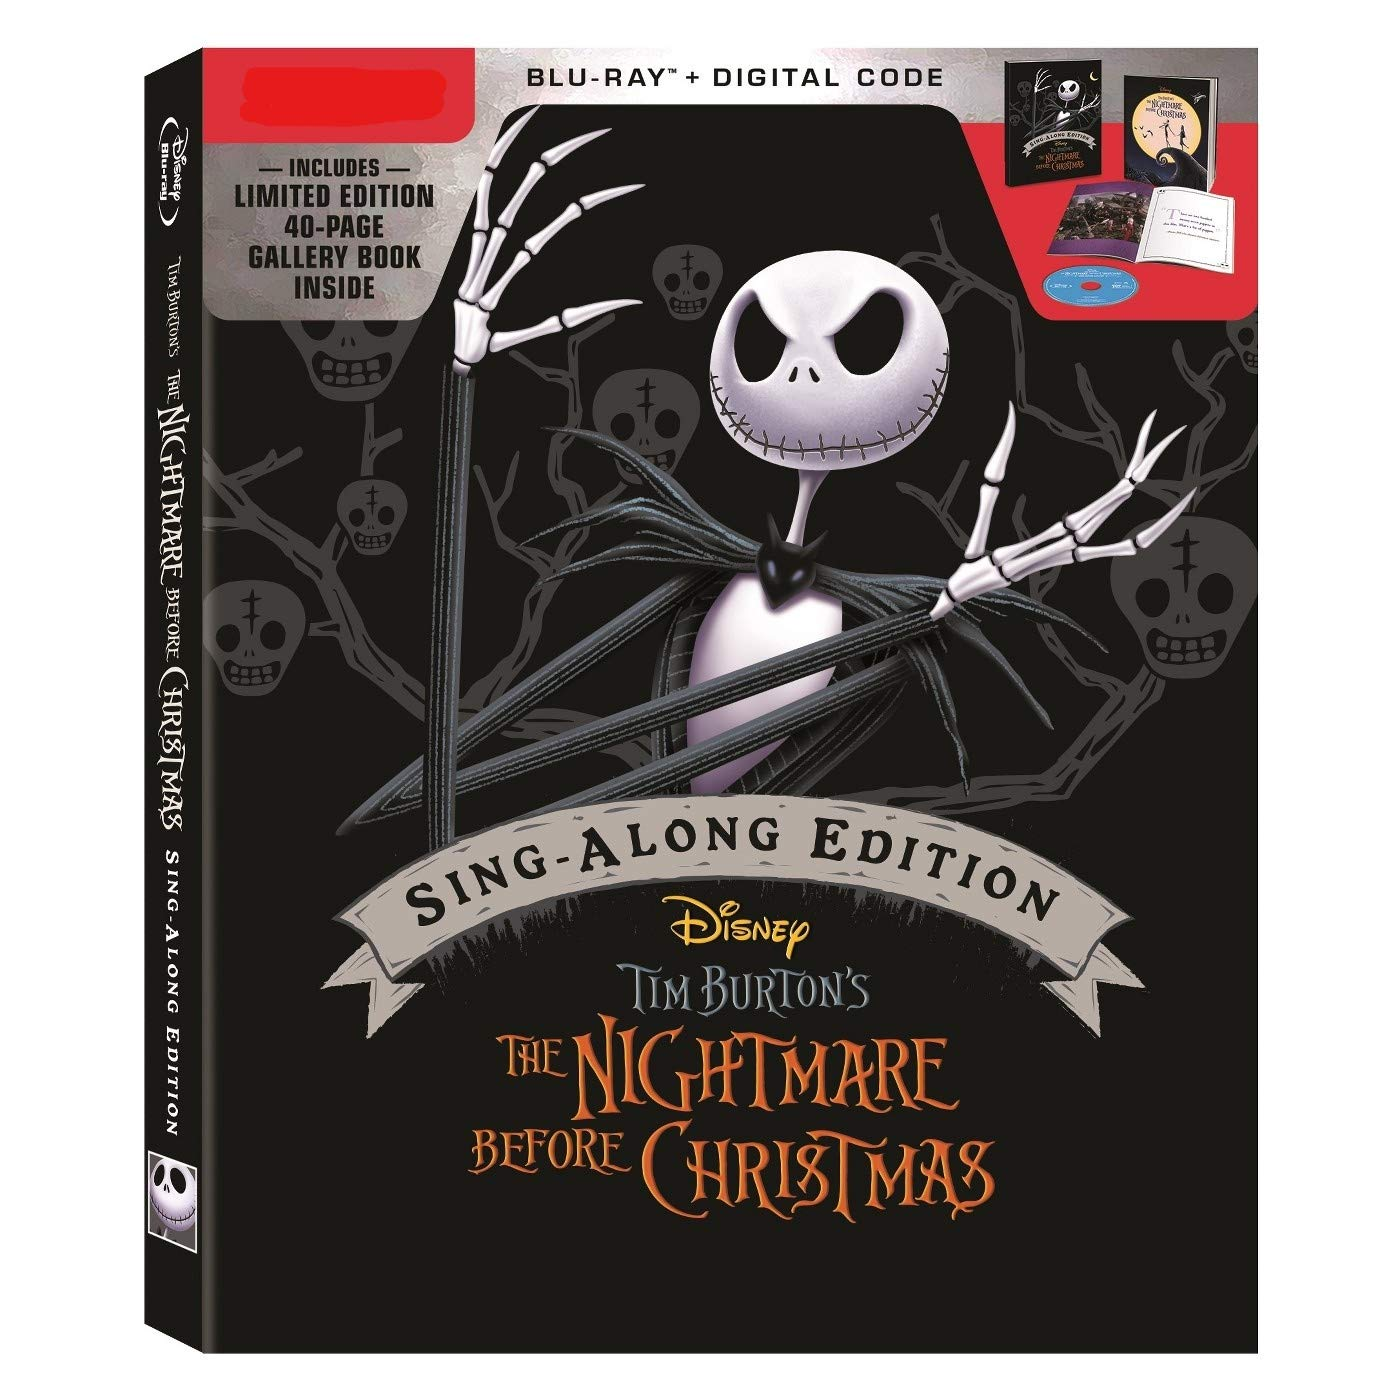 The Nightmare Before Christmas 2020 Blu-Ray Release Amazon.com: The Nightmare Before Christmas 25th Anniversary